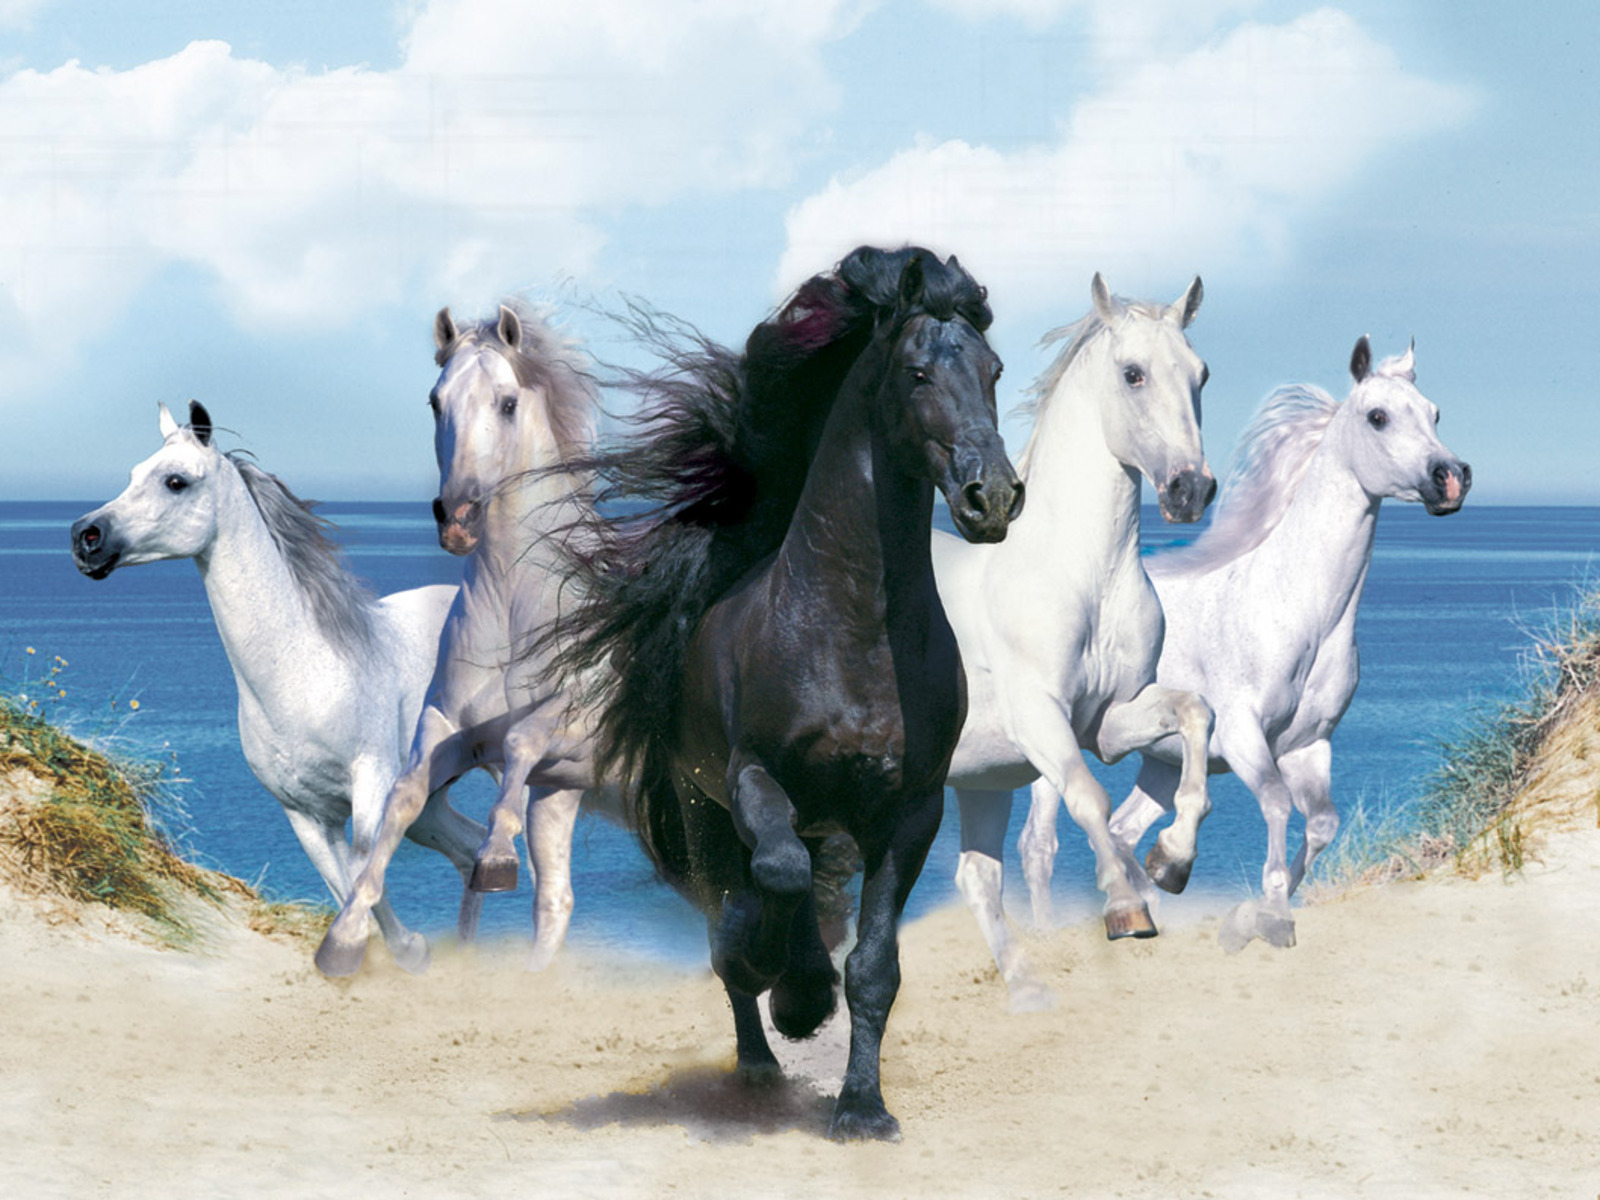 Wallpapers World: Animals Wallpapers Fantasy Beautiful Horses